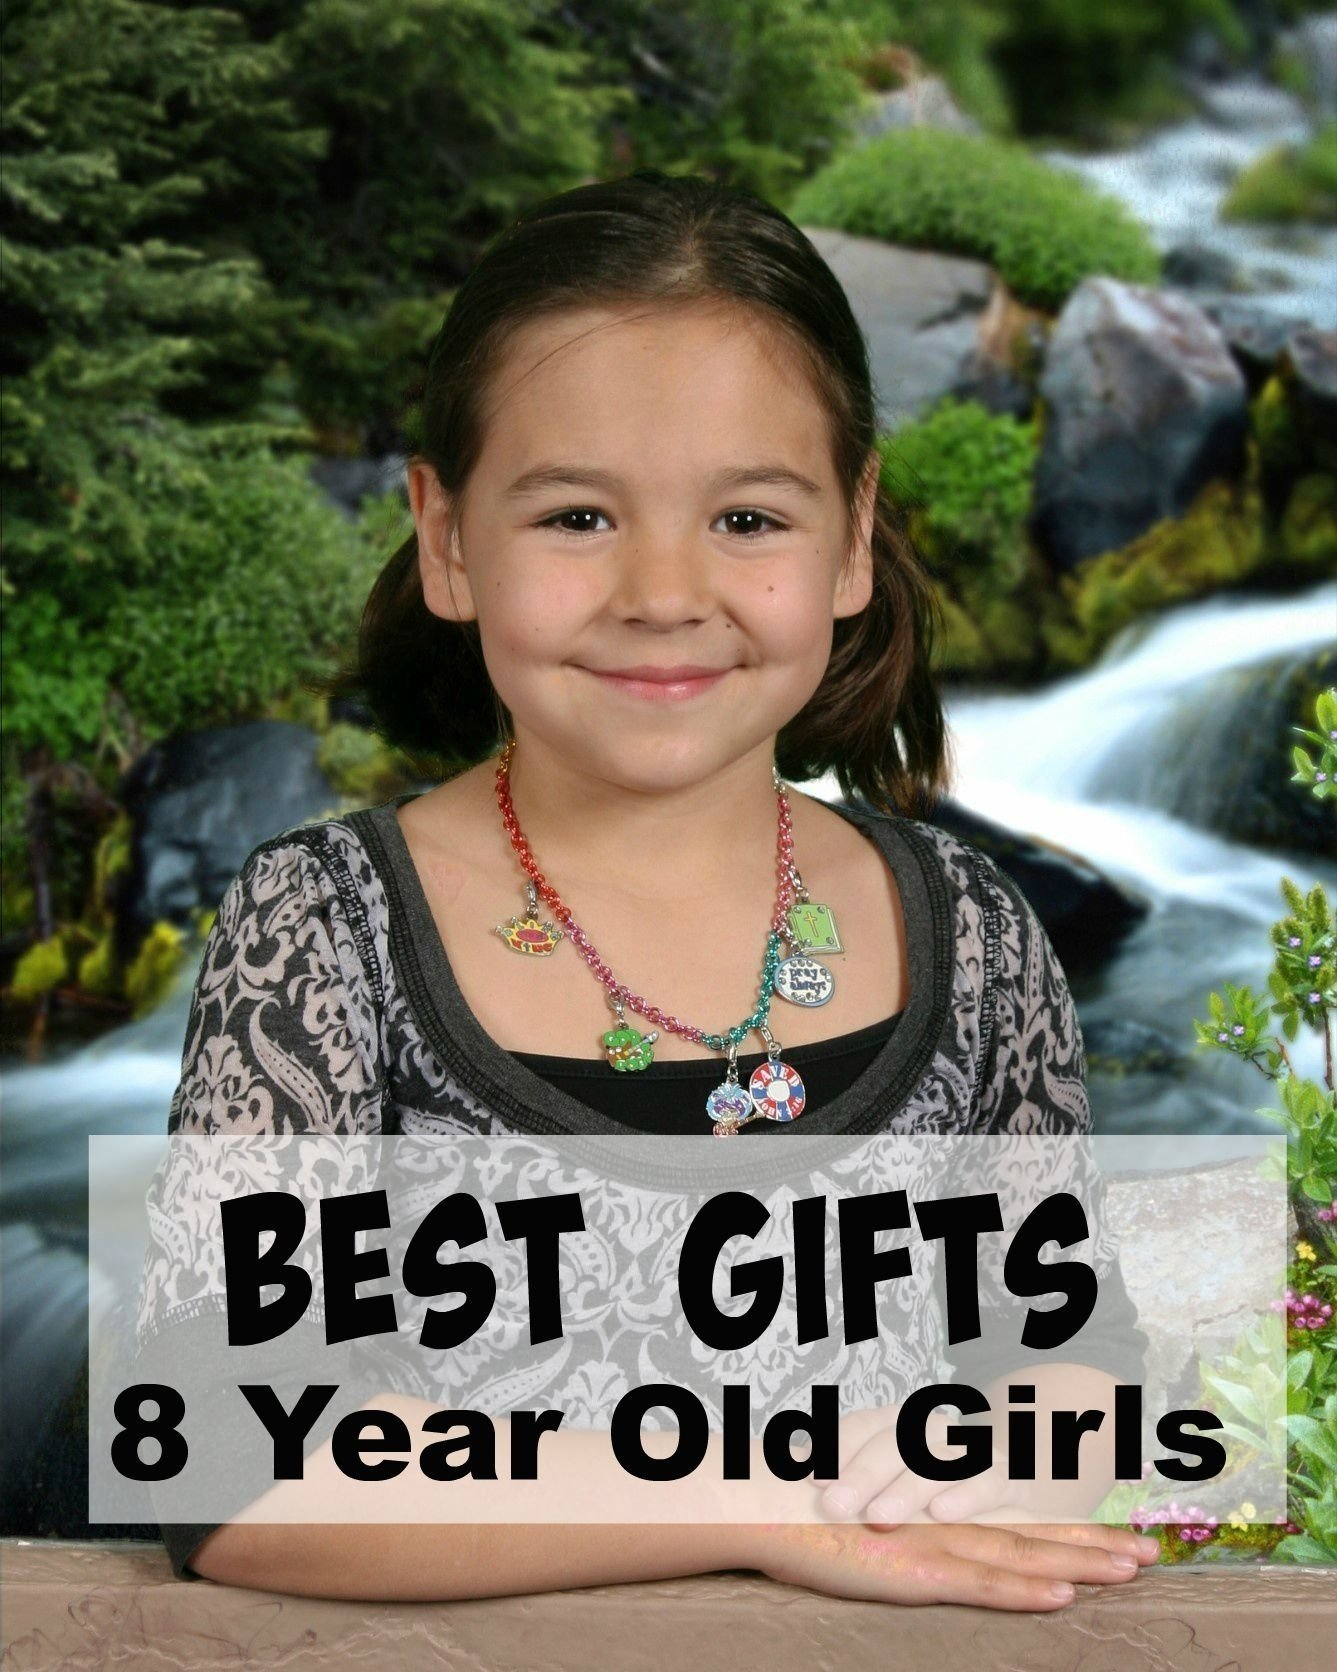 10 Fabulous Birthday Gift Ideas For 8 Yr Old Girl cool birthday gifts for 8 year old girls 2018 top toys 1 2021